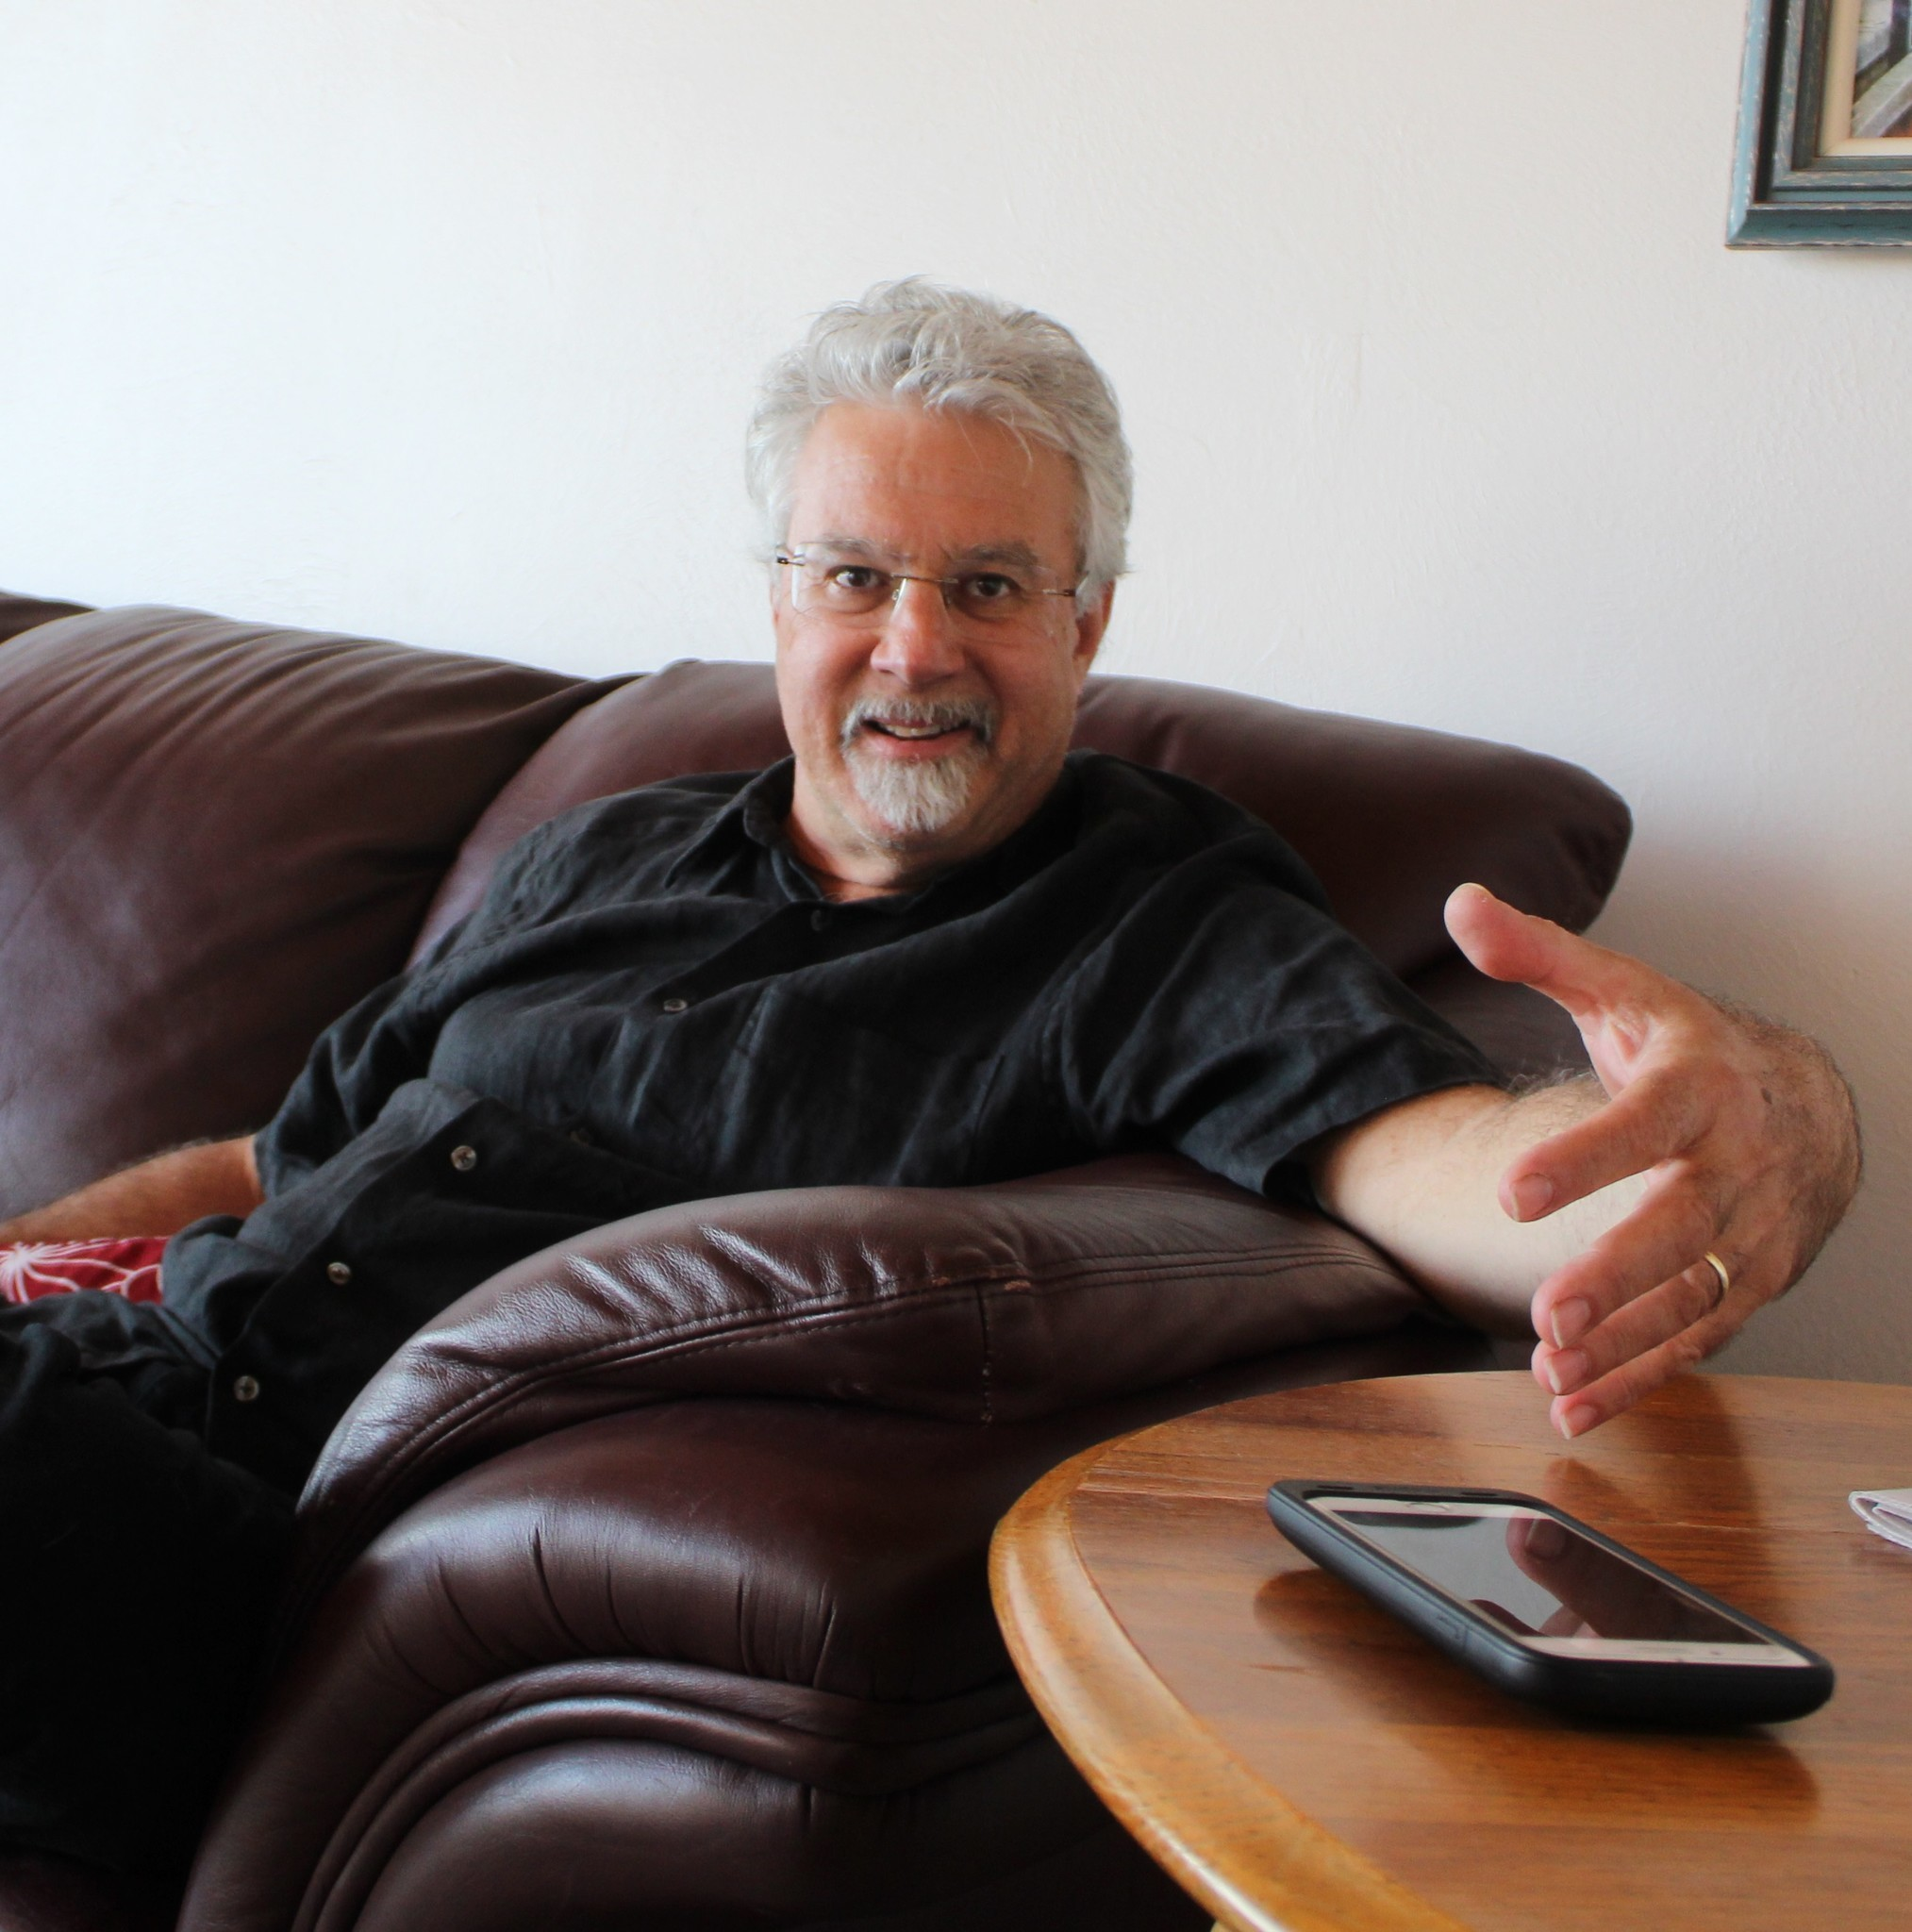 Rock the Choir keyboardist and band leader Andy Shorenstein, a workers' compensation judge by day, relaxes in his Mount Soledad home.